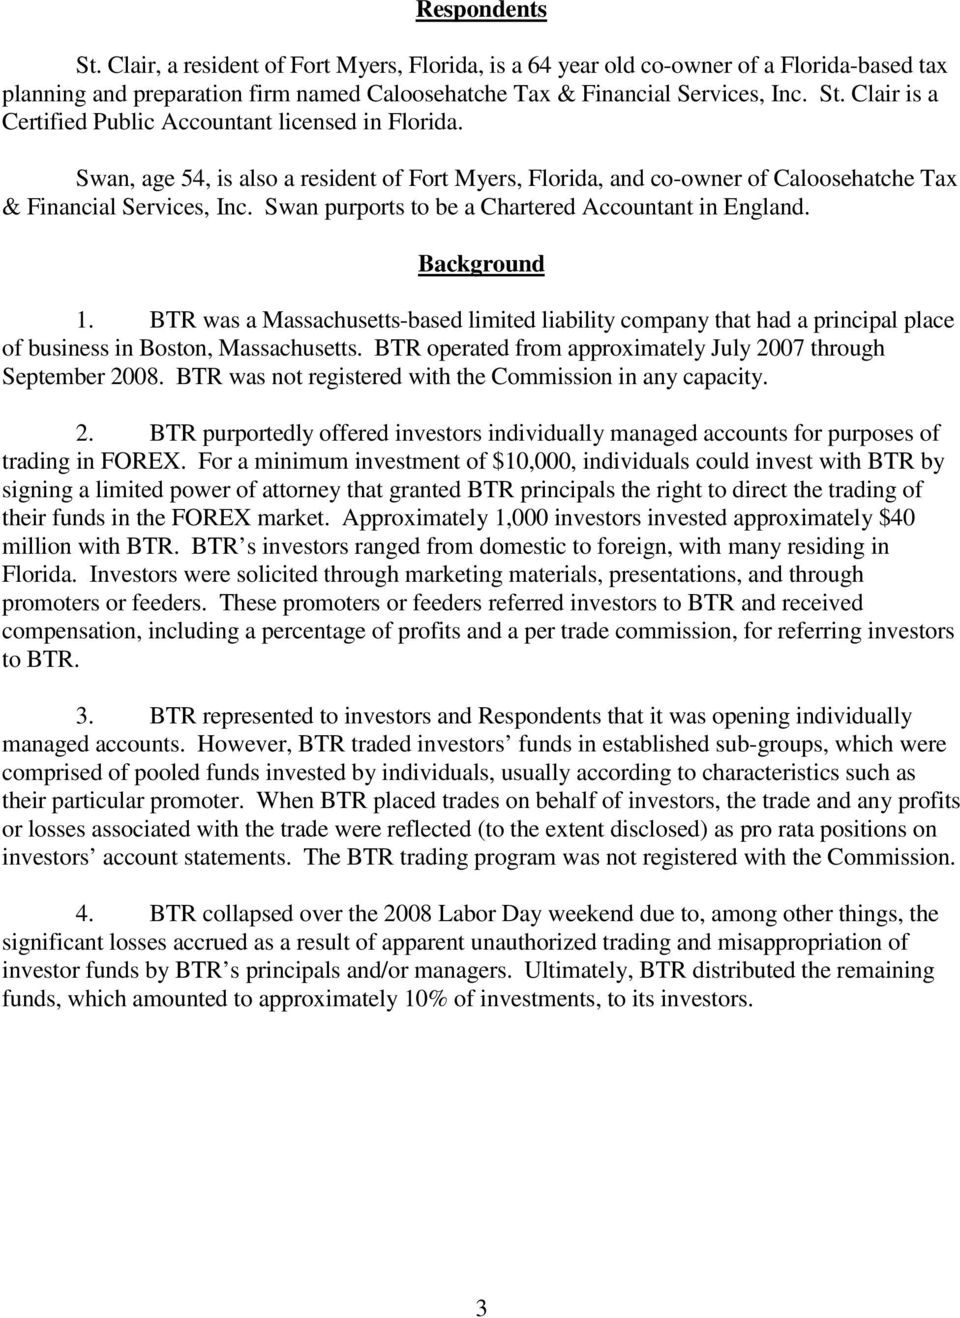 BTR was a Massachusetts-based limited liability company that had a principal place of business in Boston, Massachusetts. BTR operated from approximately July 2007 through September 2008.